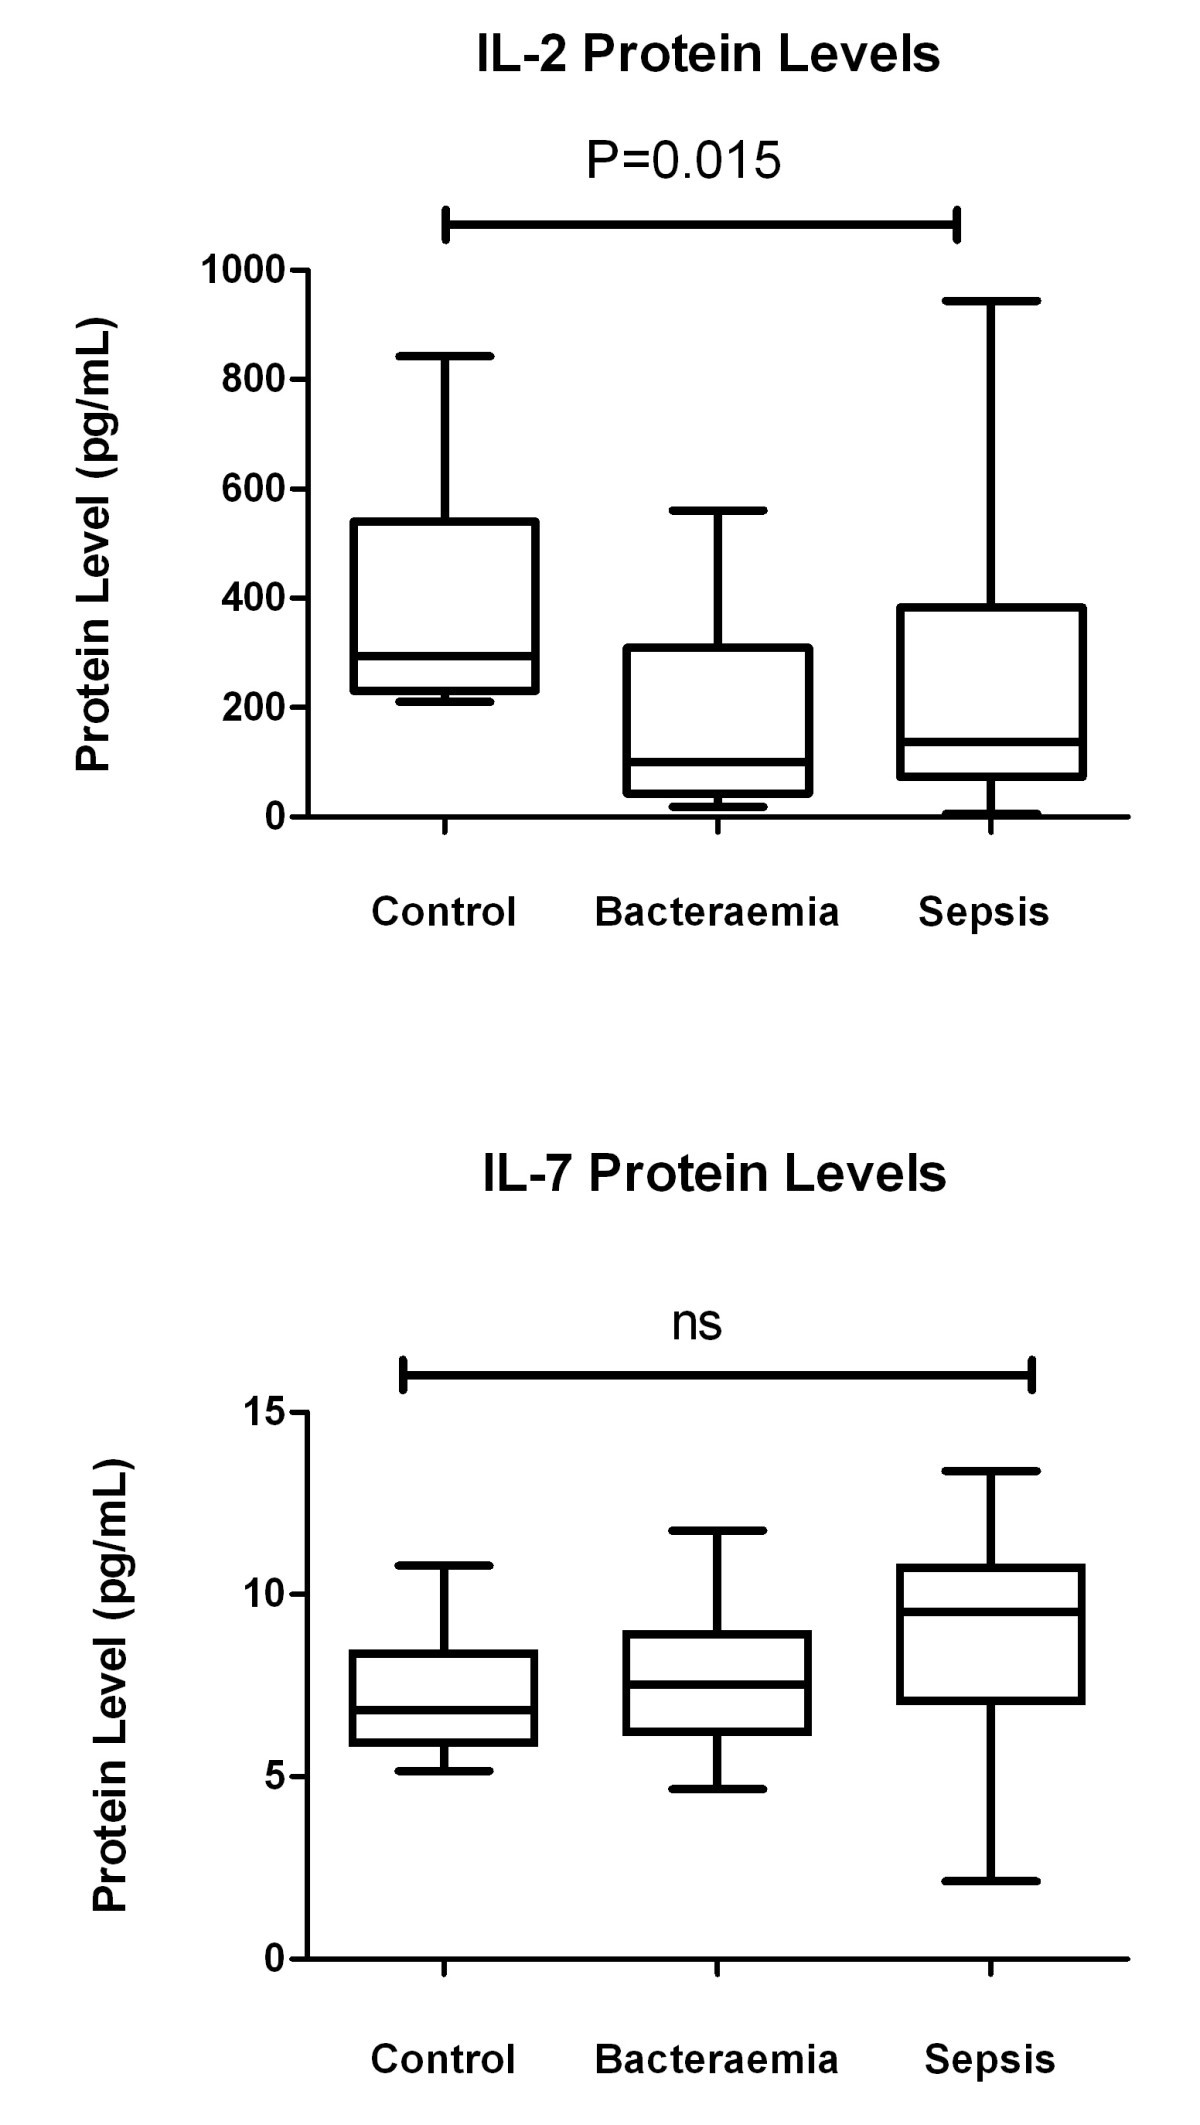 Post operative infection and sepsis in humans is associated with